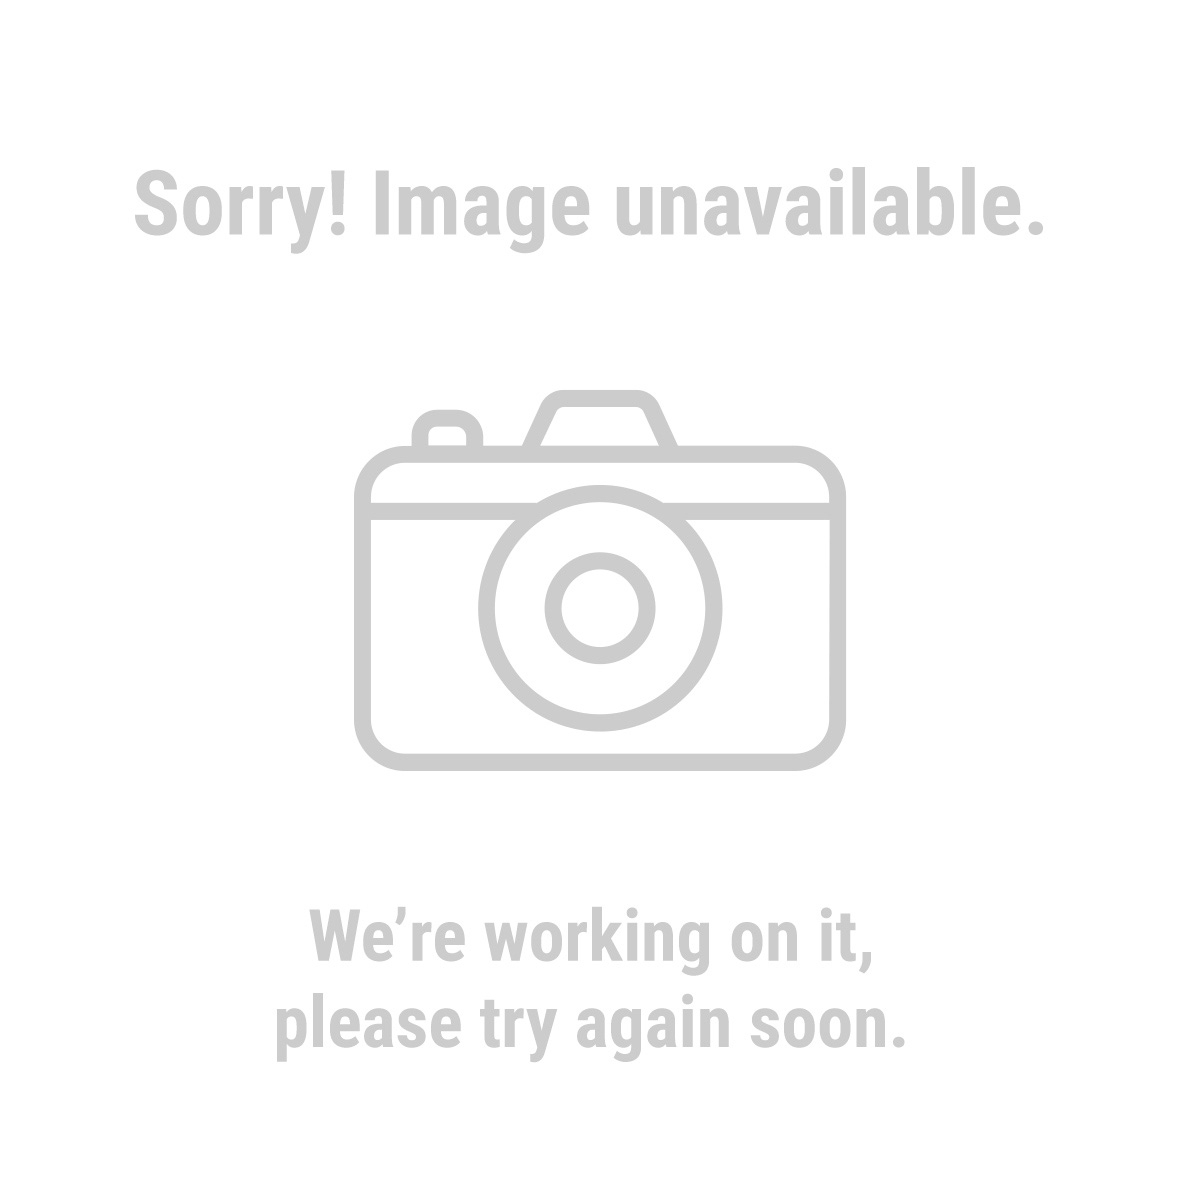 Thunderbolt Magnum 97866 4 Pack AA High Capacity NiMH Rechargeable Batteries